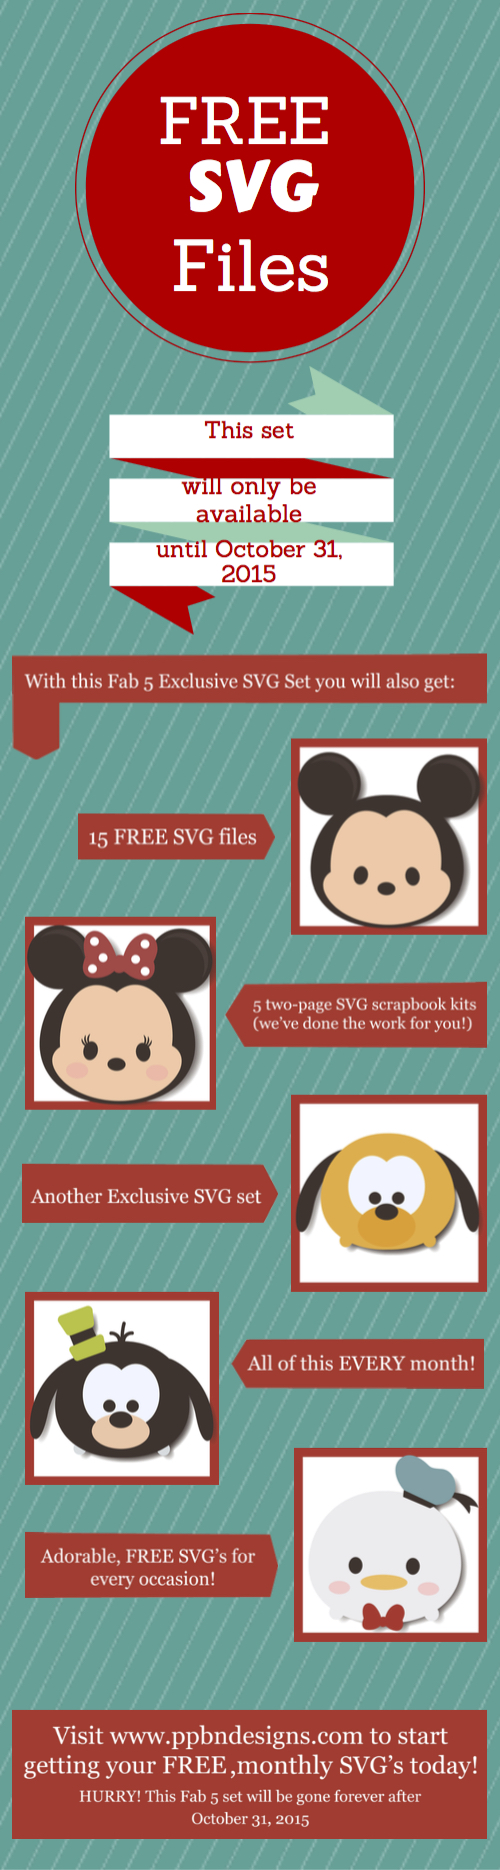 free svg files for every occasion svg files silhouette cameo free disney silhouettes svg. Black Bedroom Furniture Sets. Home Design Ideas